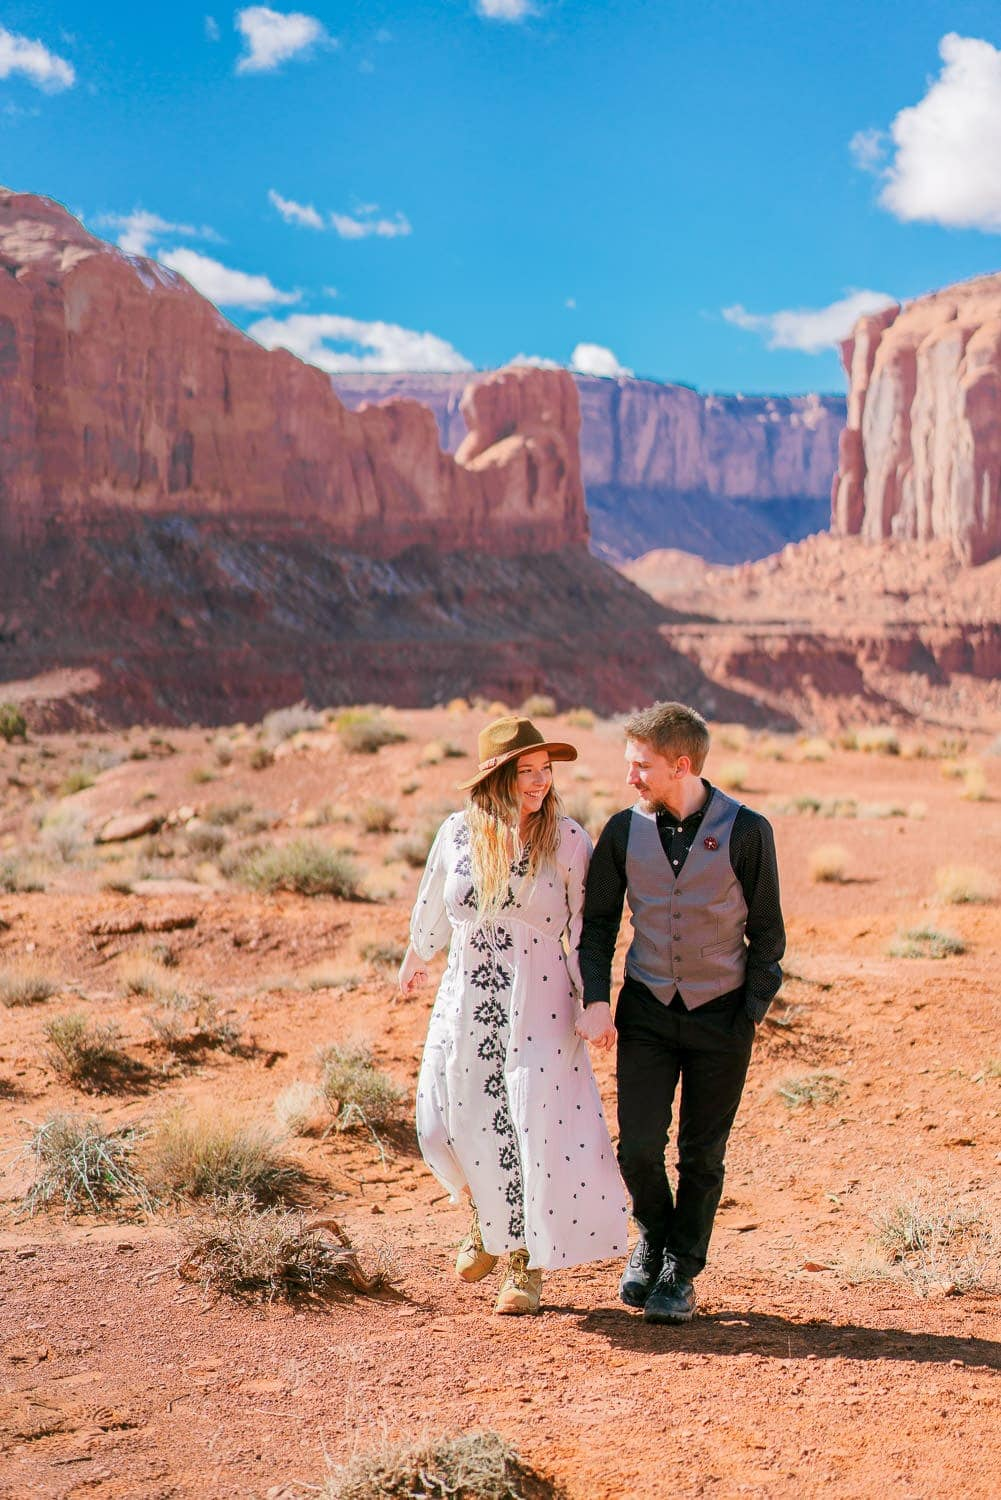 Christina & Jeremiah elope in Monument Valley